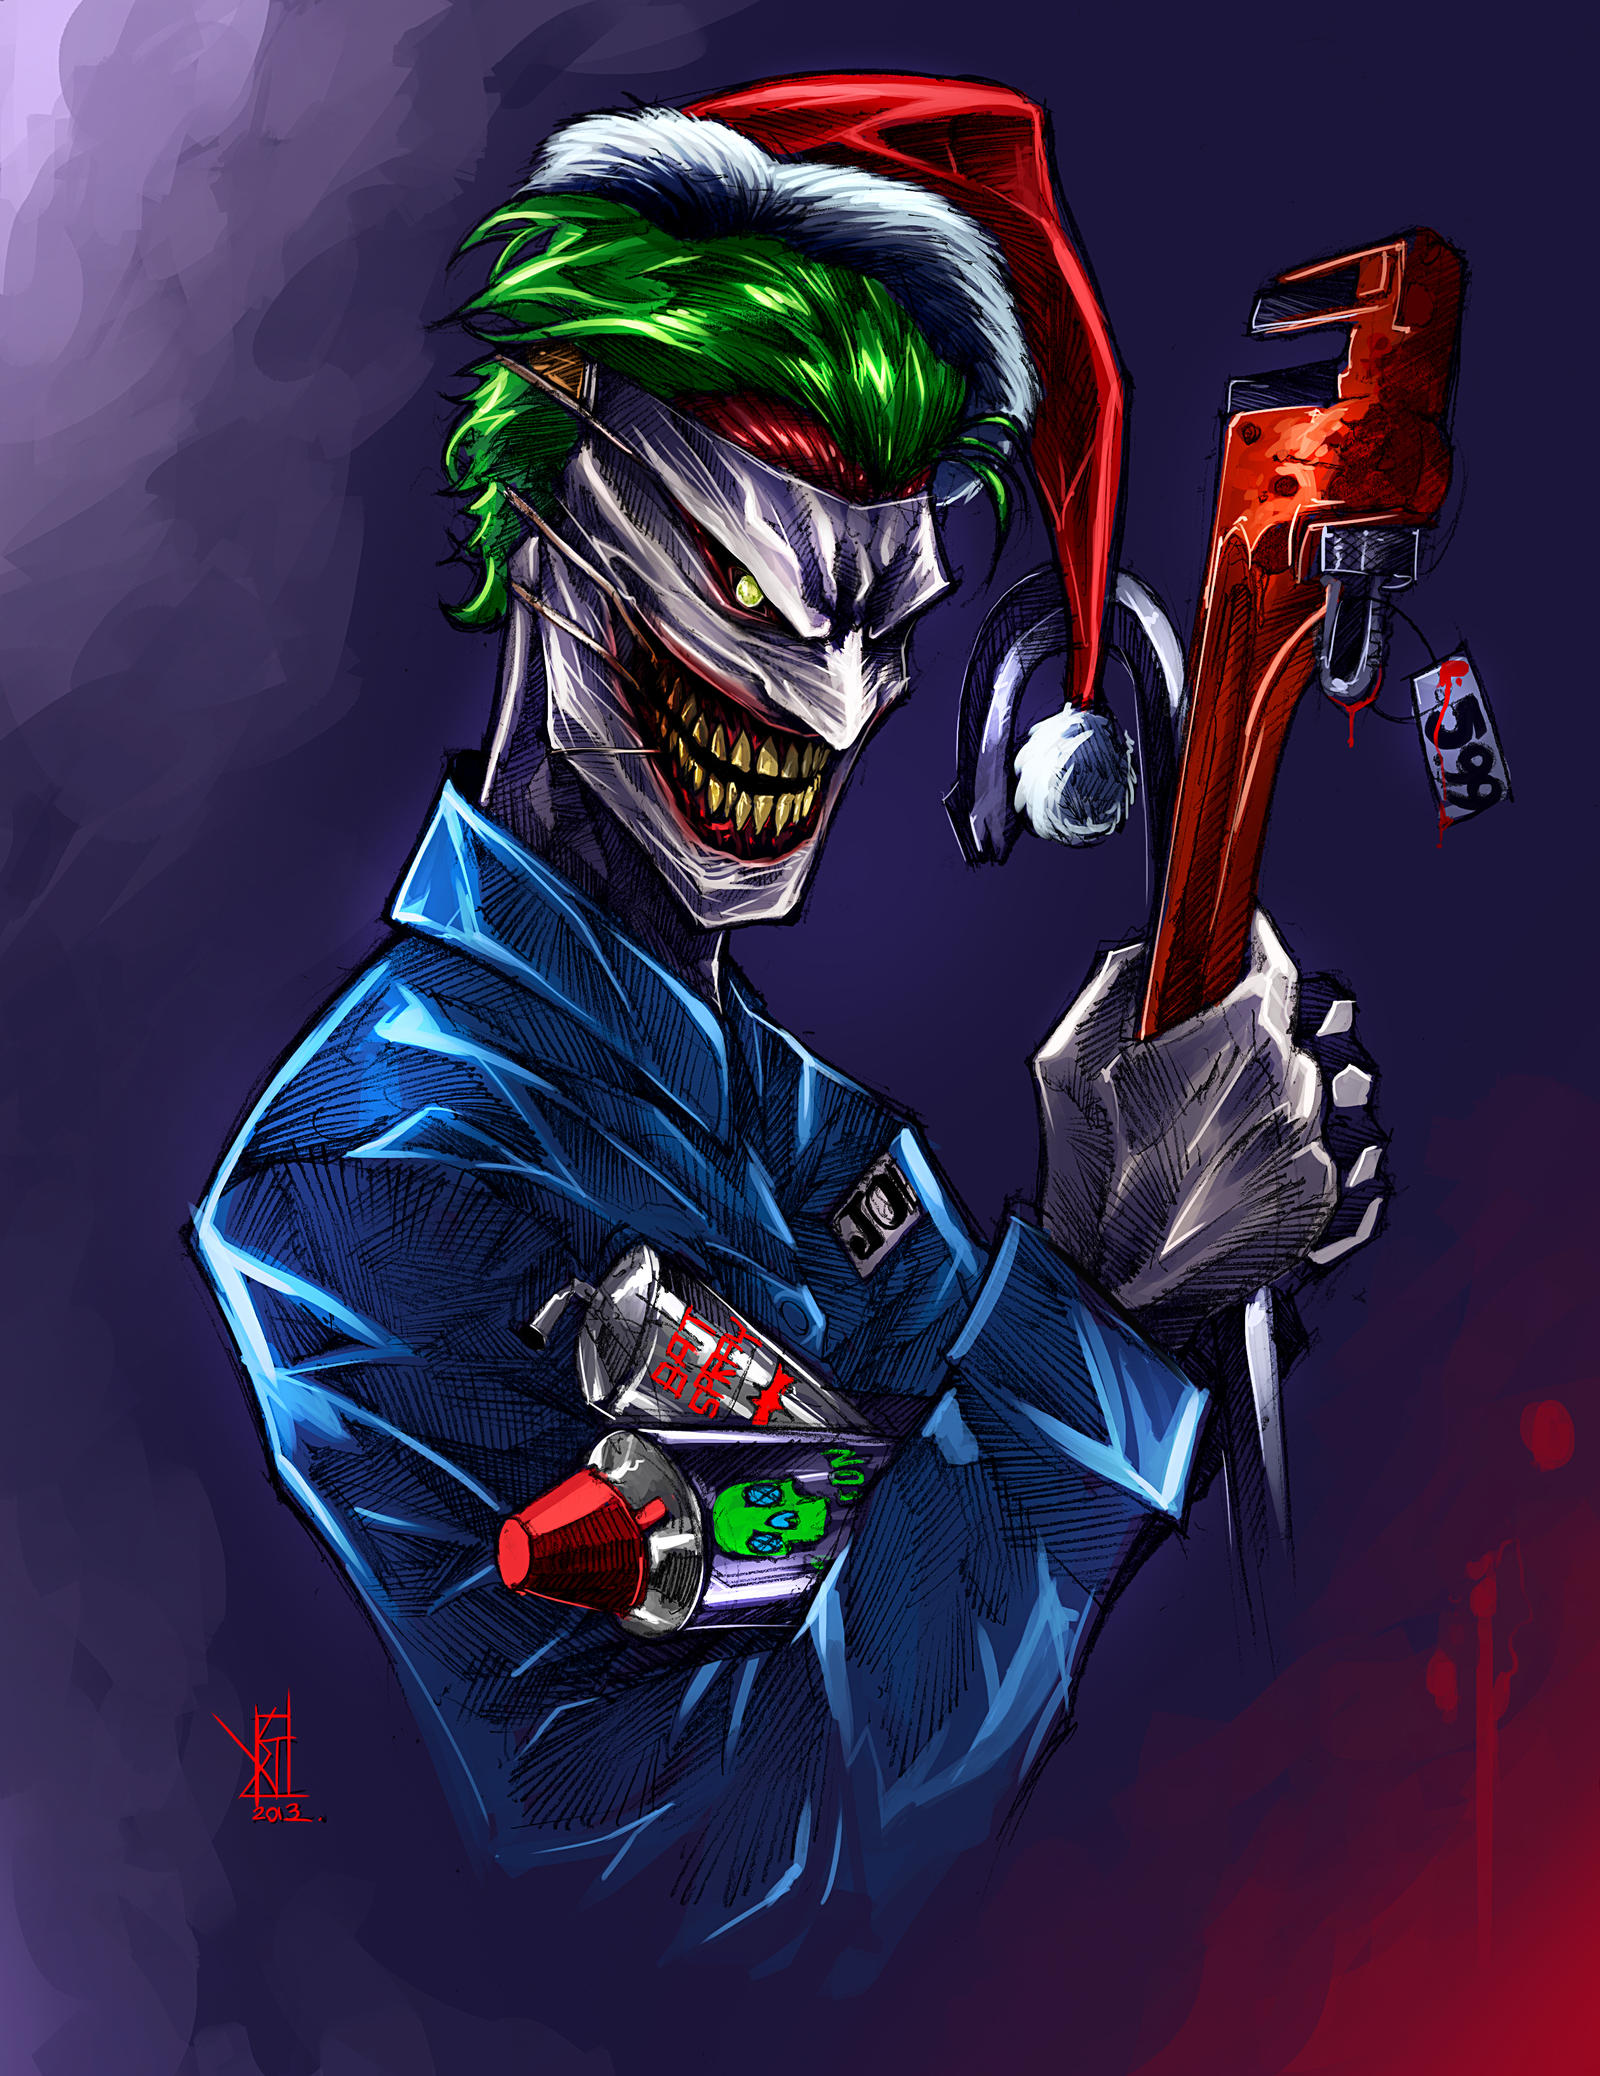 Joker 52 by TheRisingSoul on DeviantArtNew 52 Joker Wallpaper